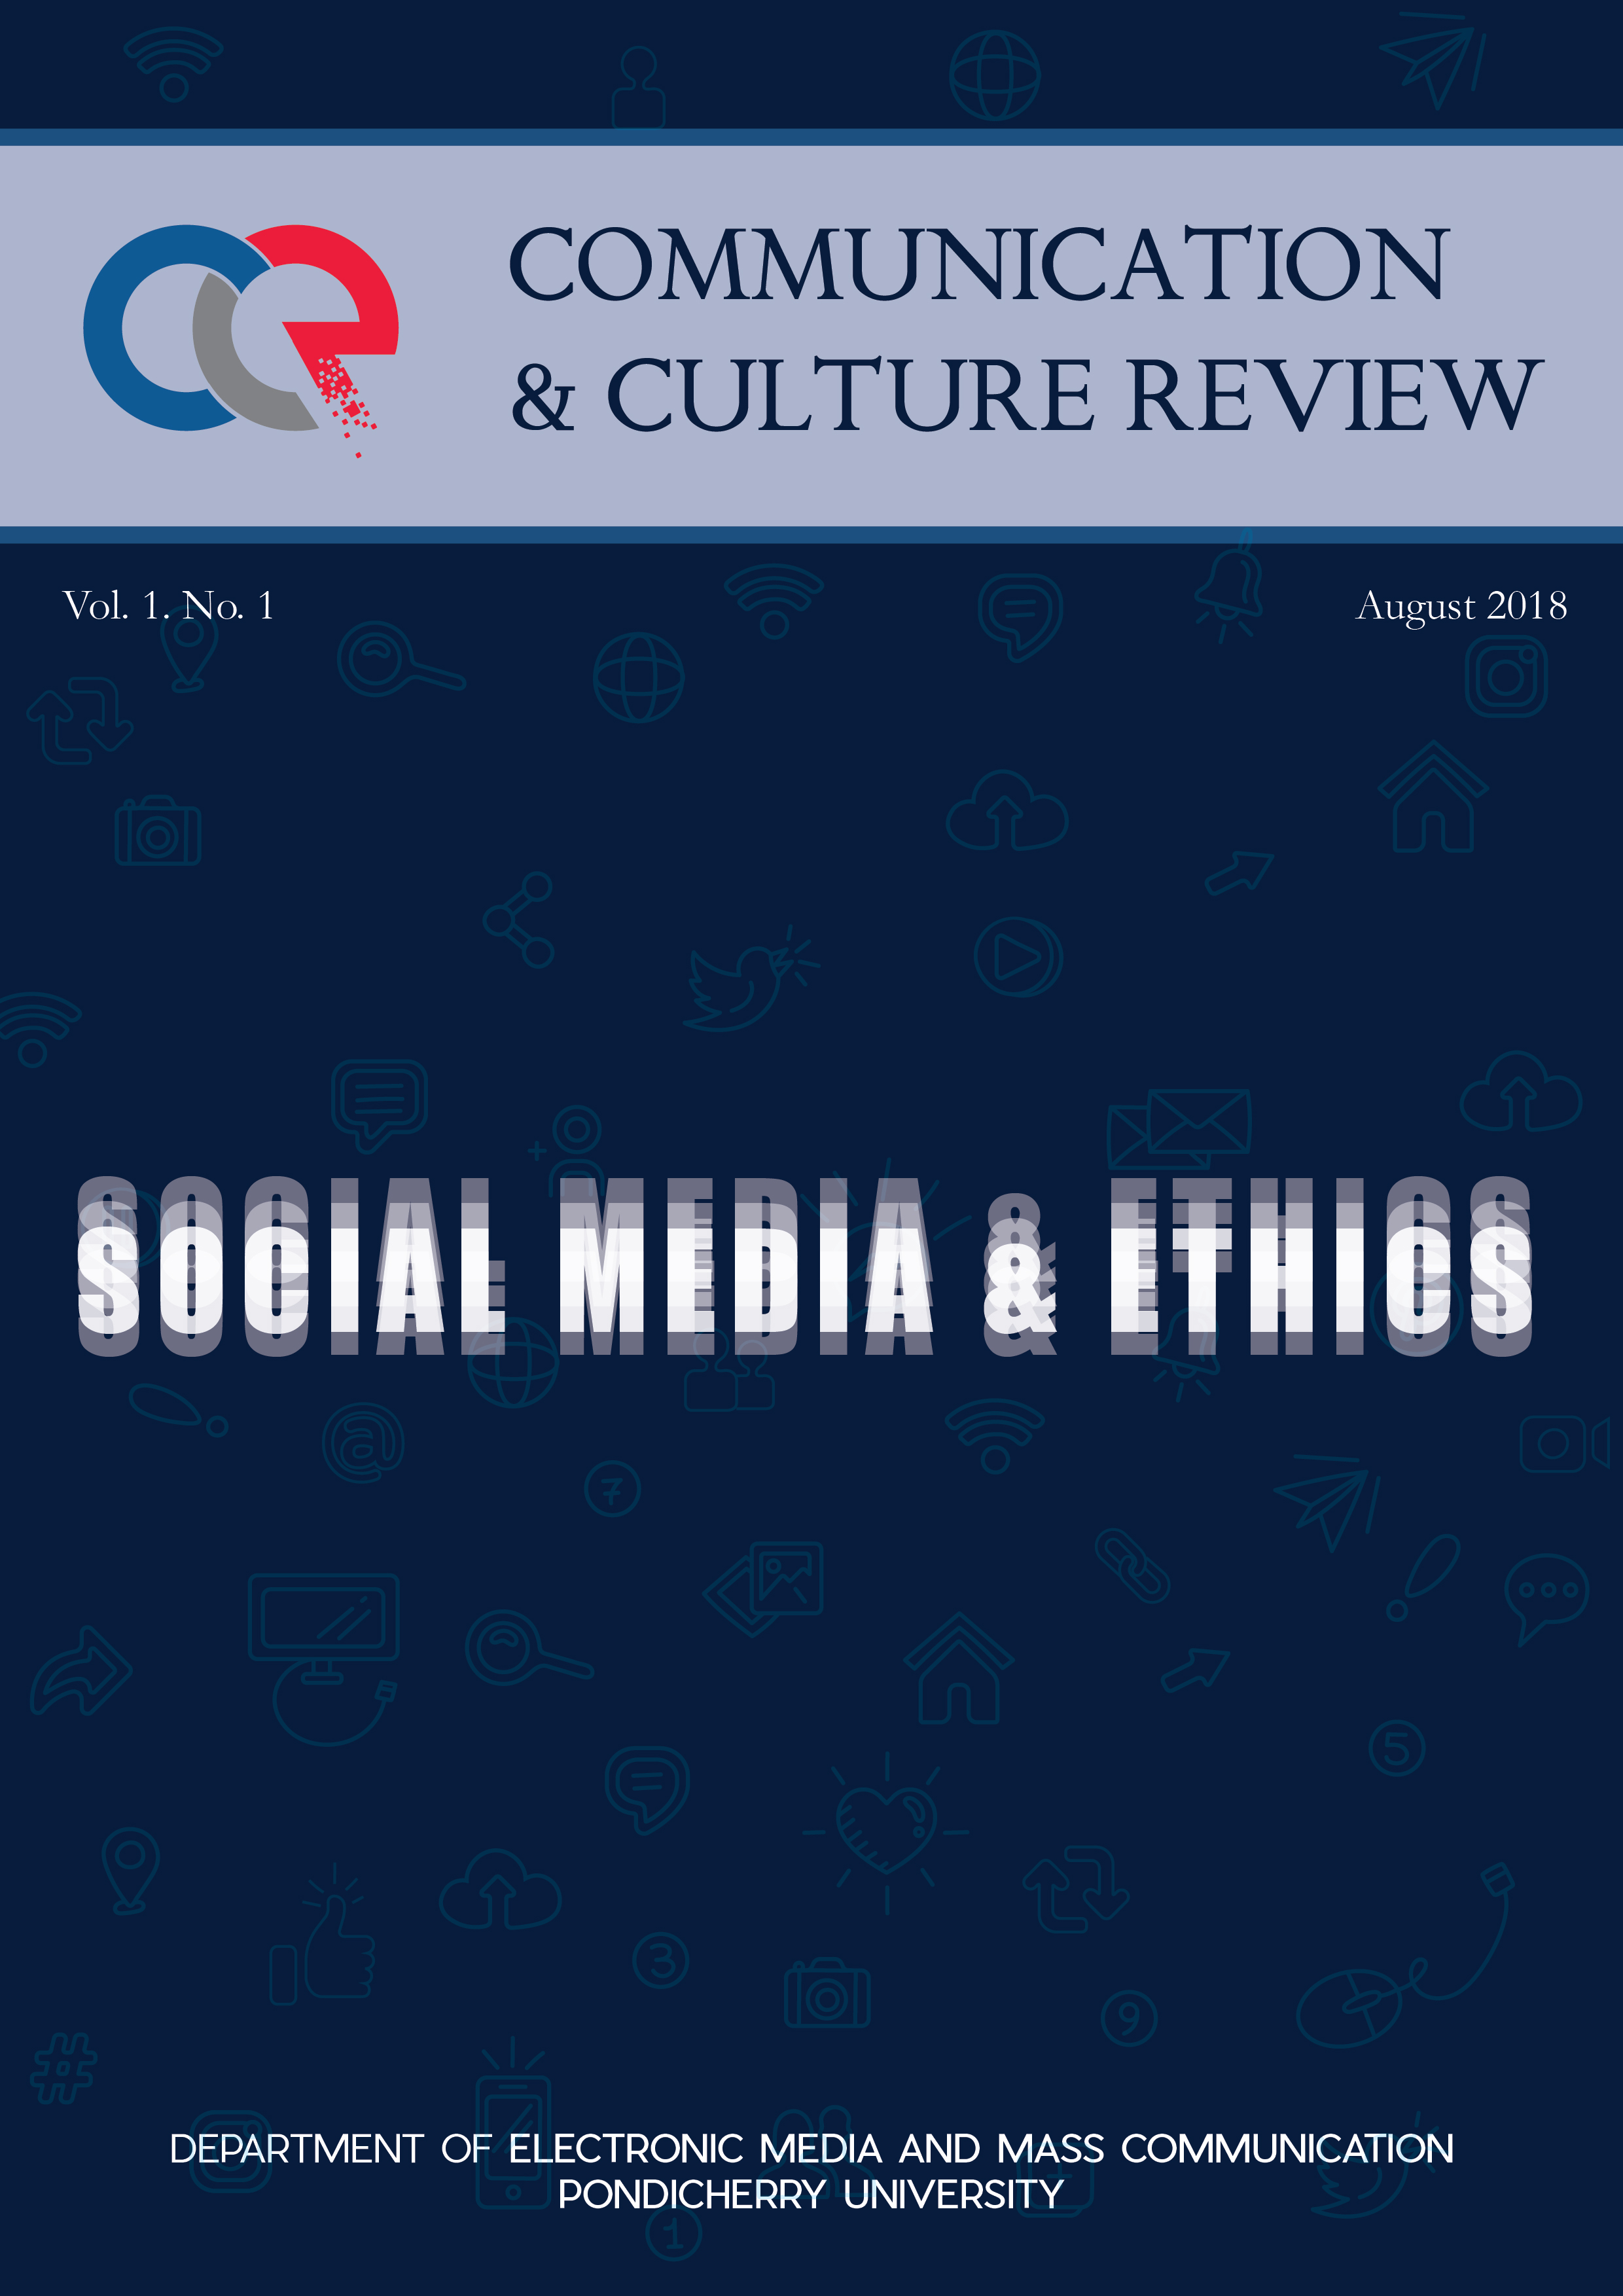 Inaugural Issue of Communication and Culture Review